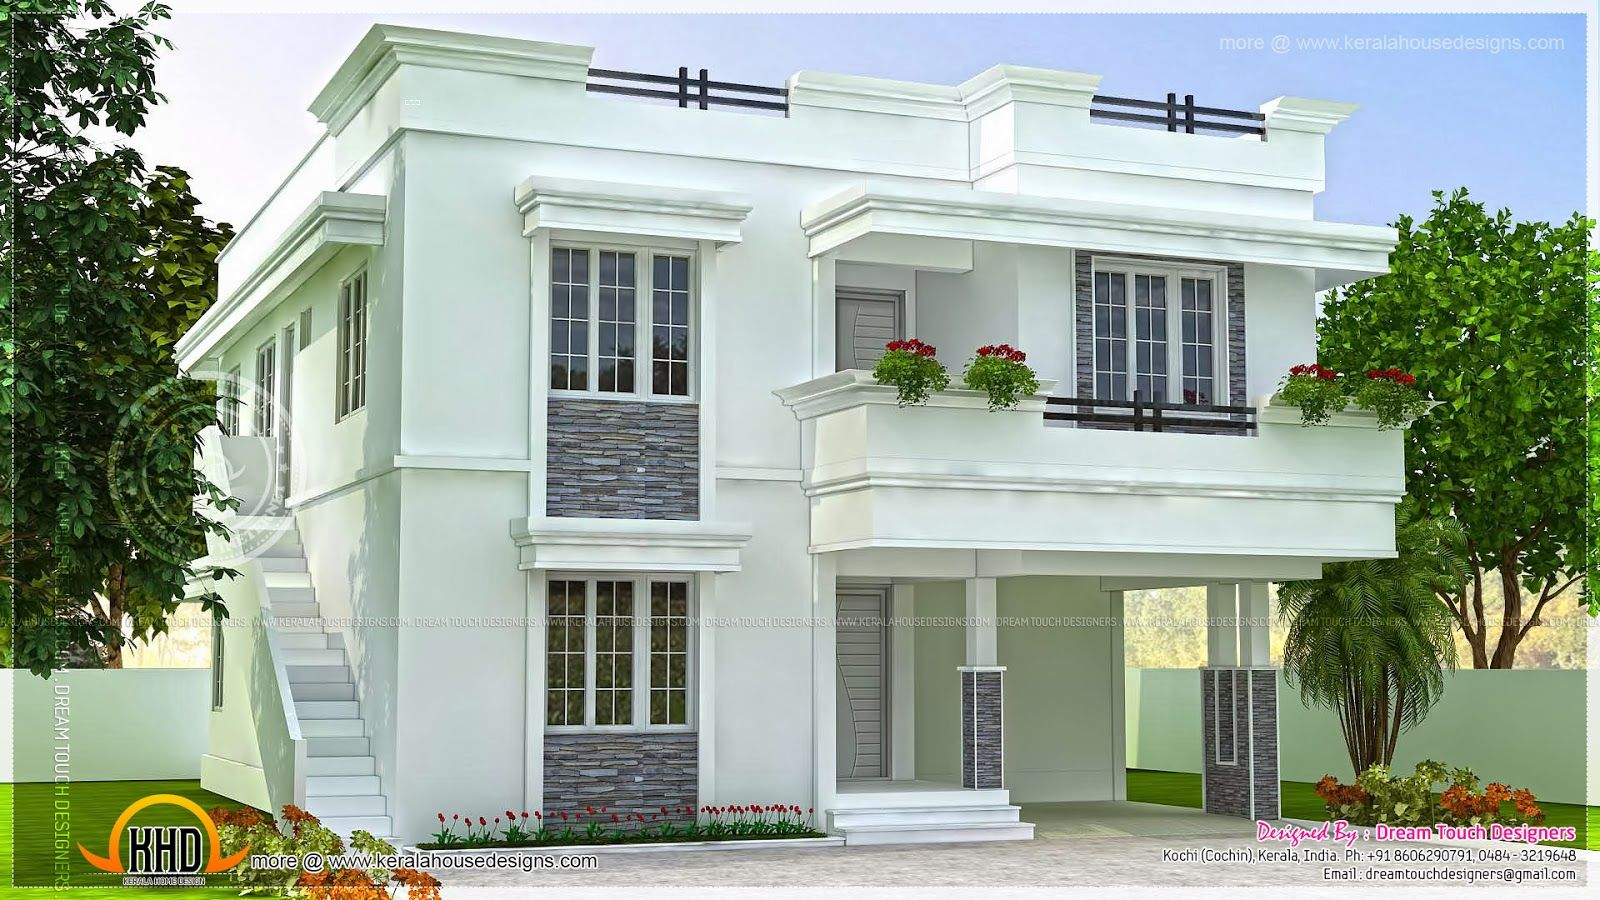 Modern beautiful home modern beautiful home design indian for Indian house models for construction